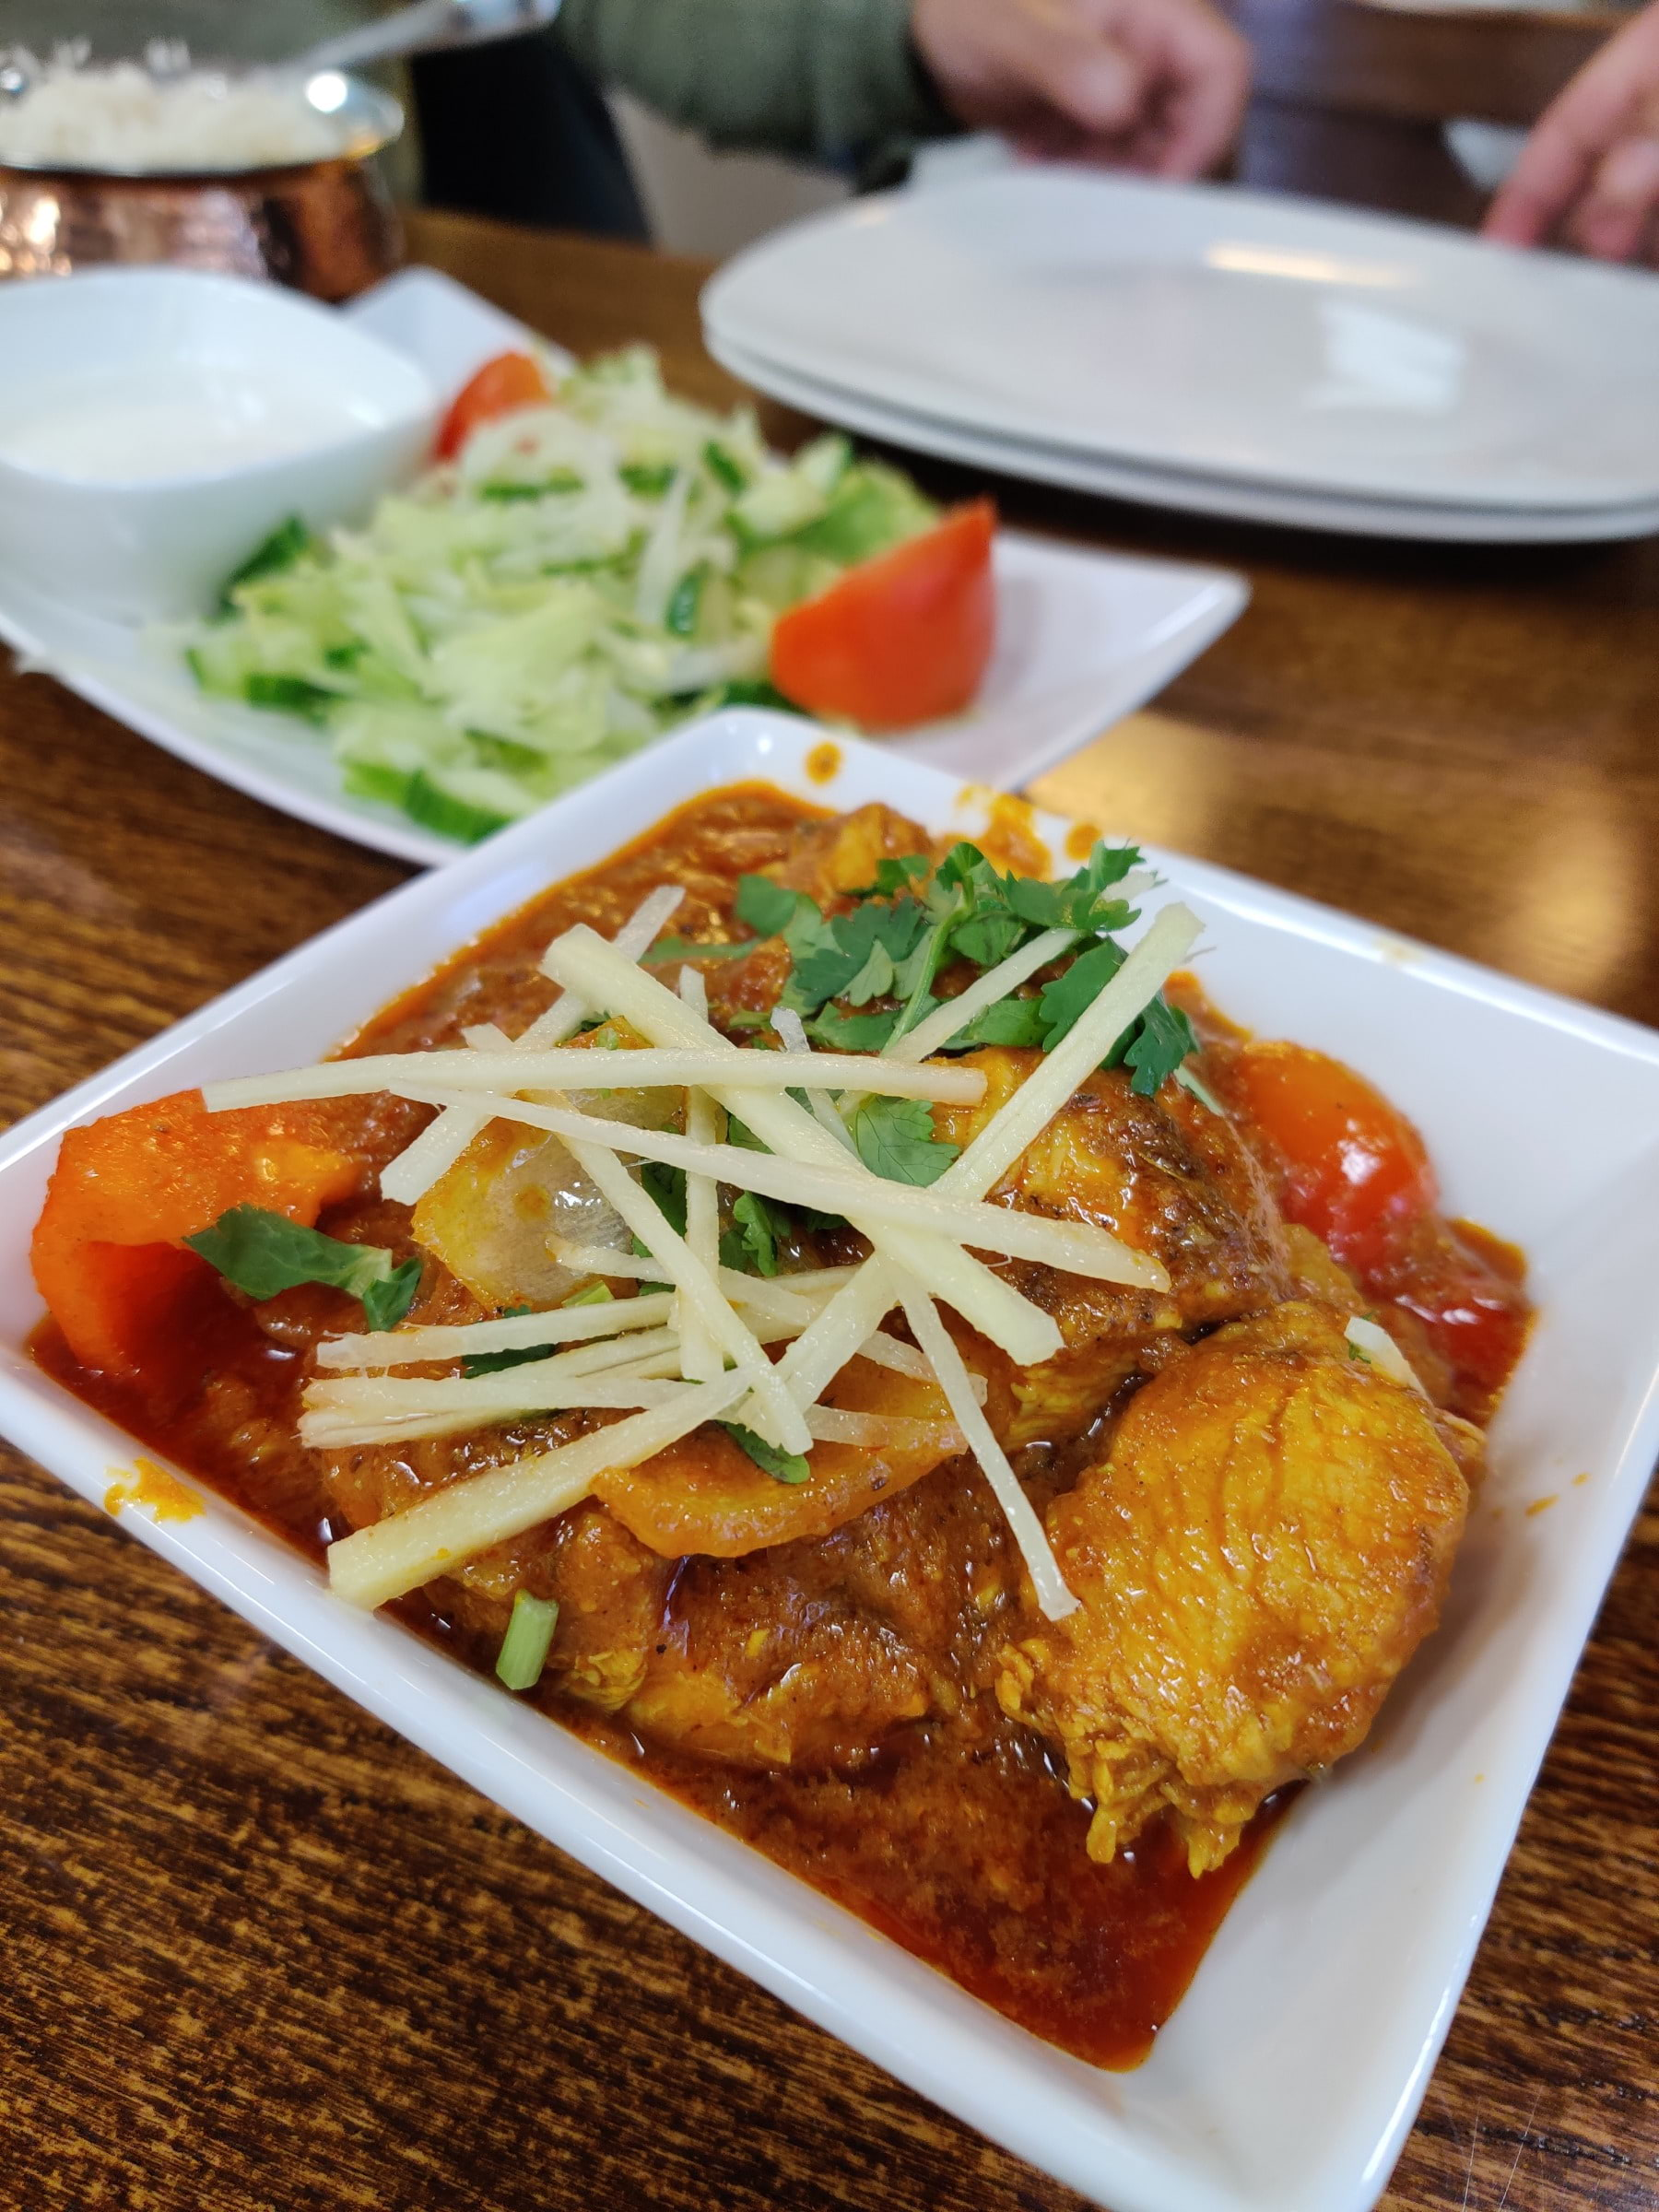 Chicken Karahi – Photo from Spice Villa by Shahzad A.